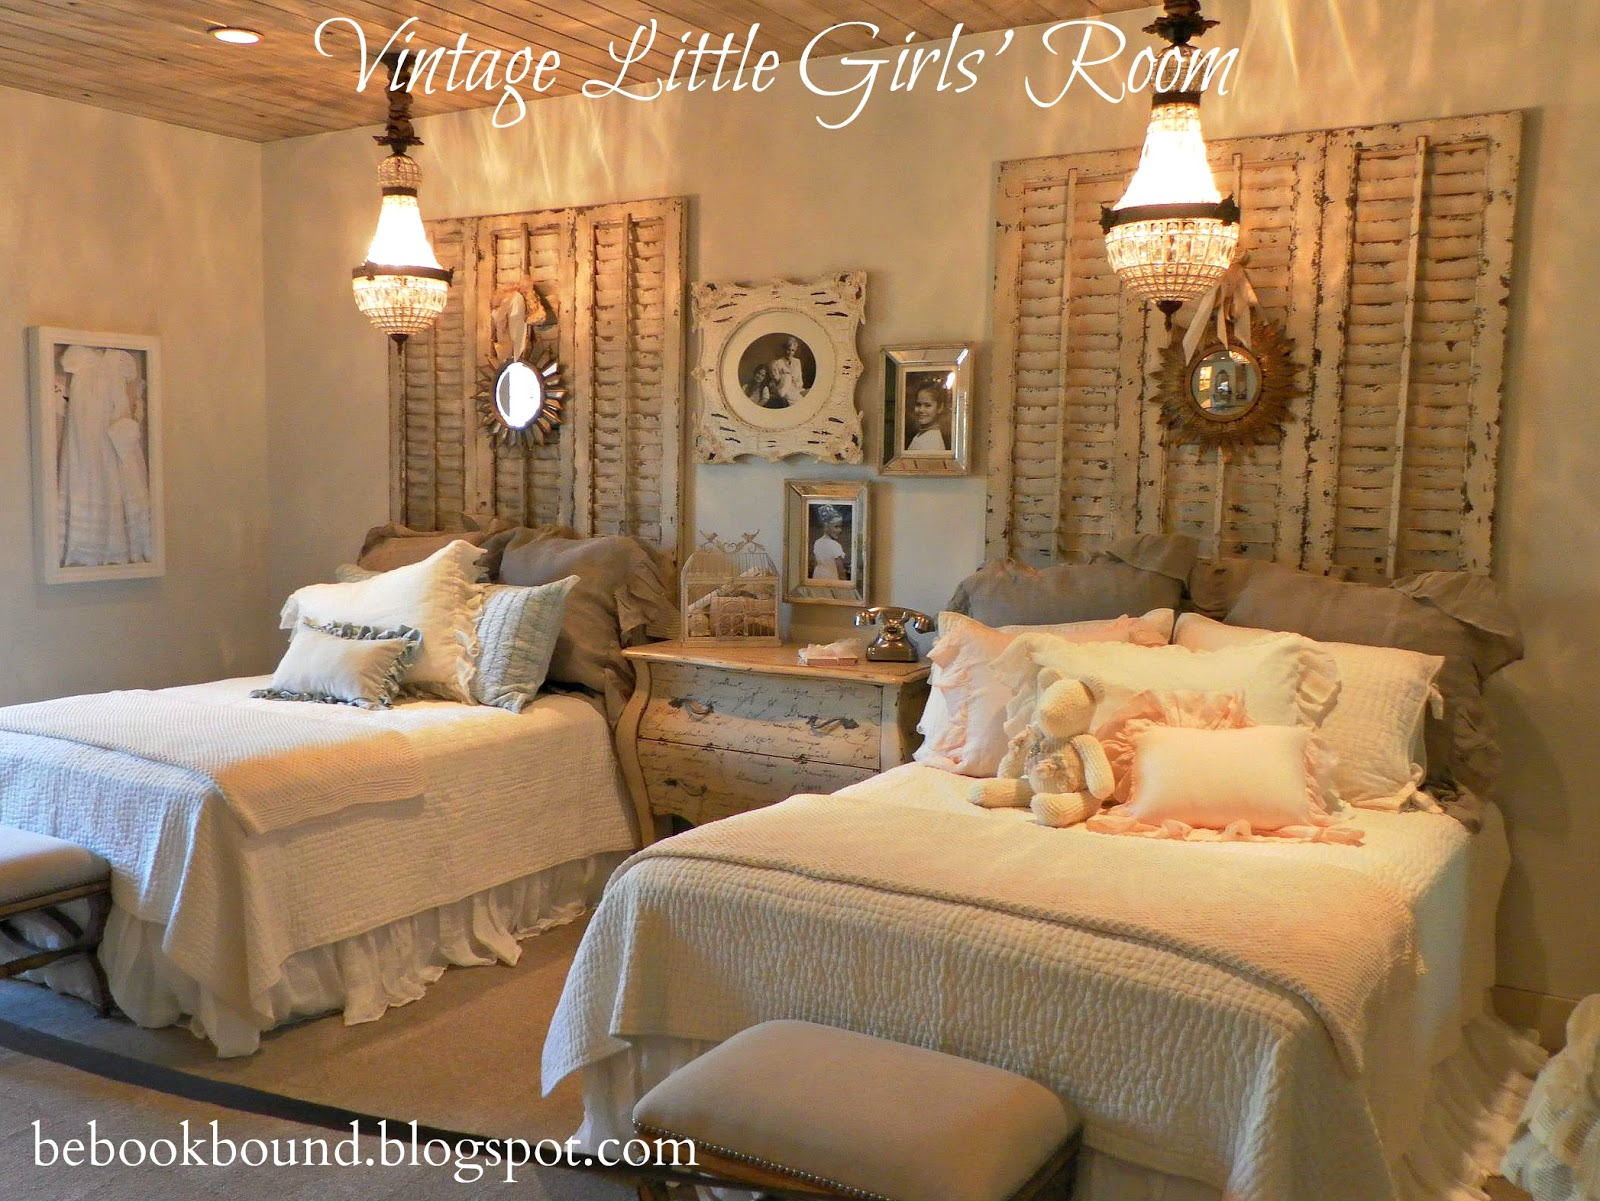 classic bedroom decorating ideas | Be Book Bound: Little House on the Prairie: A Vintage ...